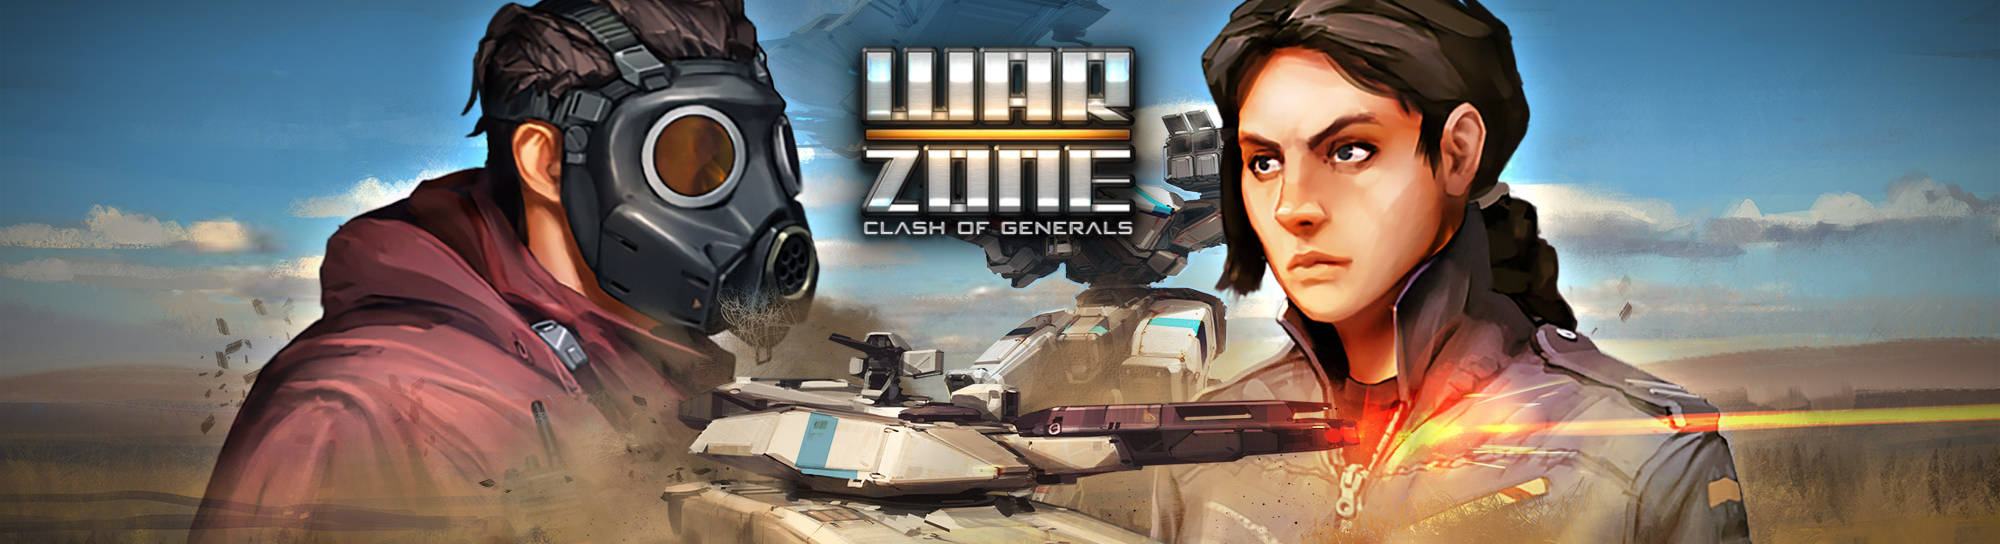 Warzone Clash of Generals